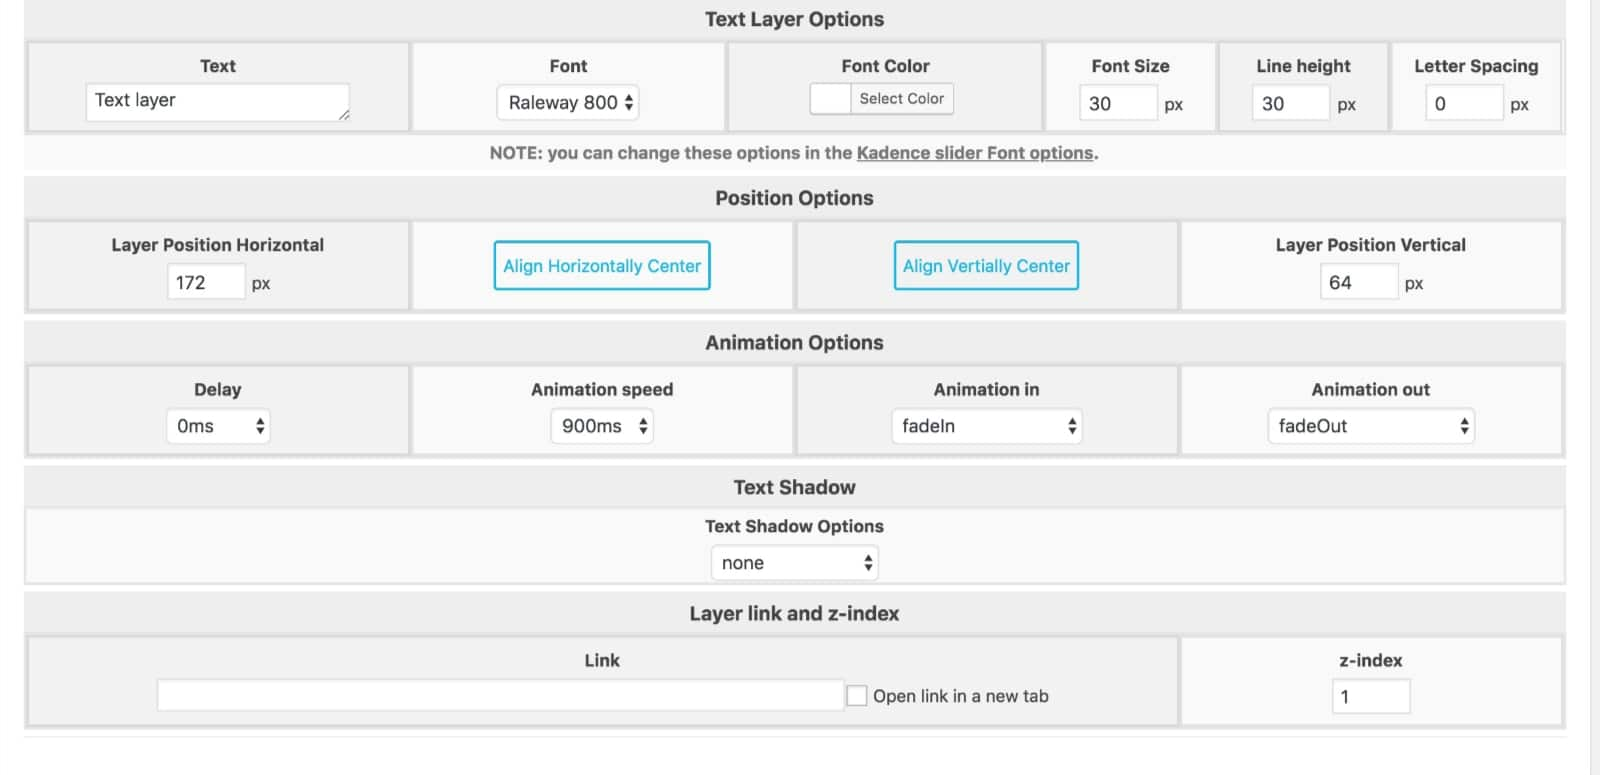 Text Layer Options